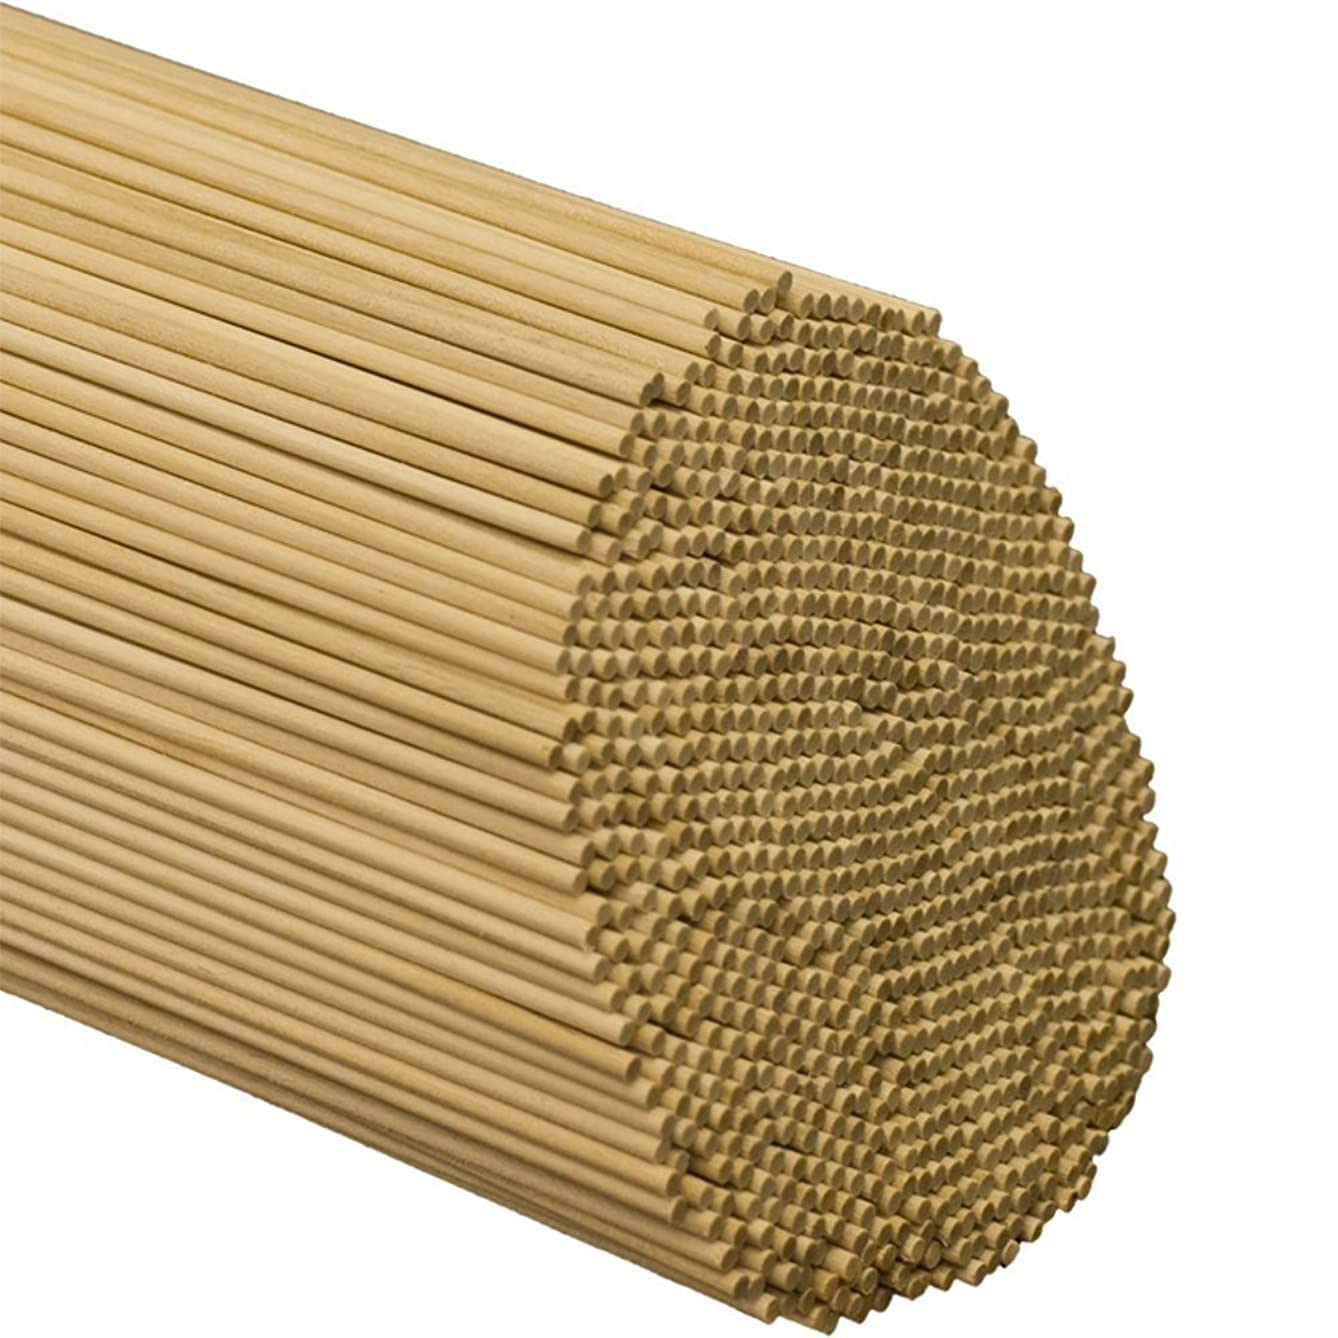 """Wooden Dowel Rods 3/16"""" x 18"""", Bag of 100 Unfinished Hardwood Sticks, for Crafts and DIY'ers - by Woodpecker Crafts"""